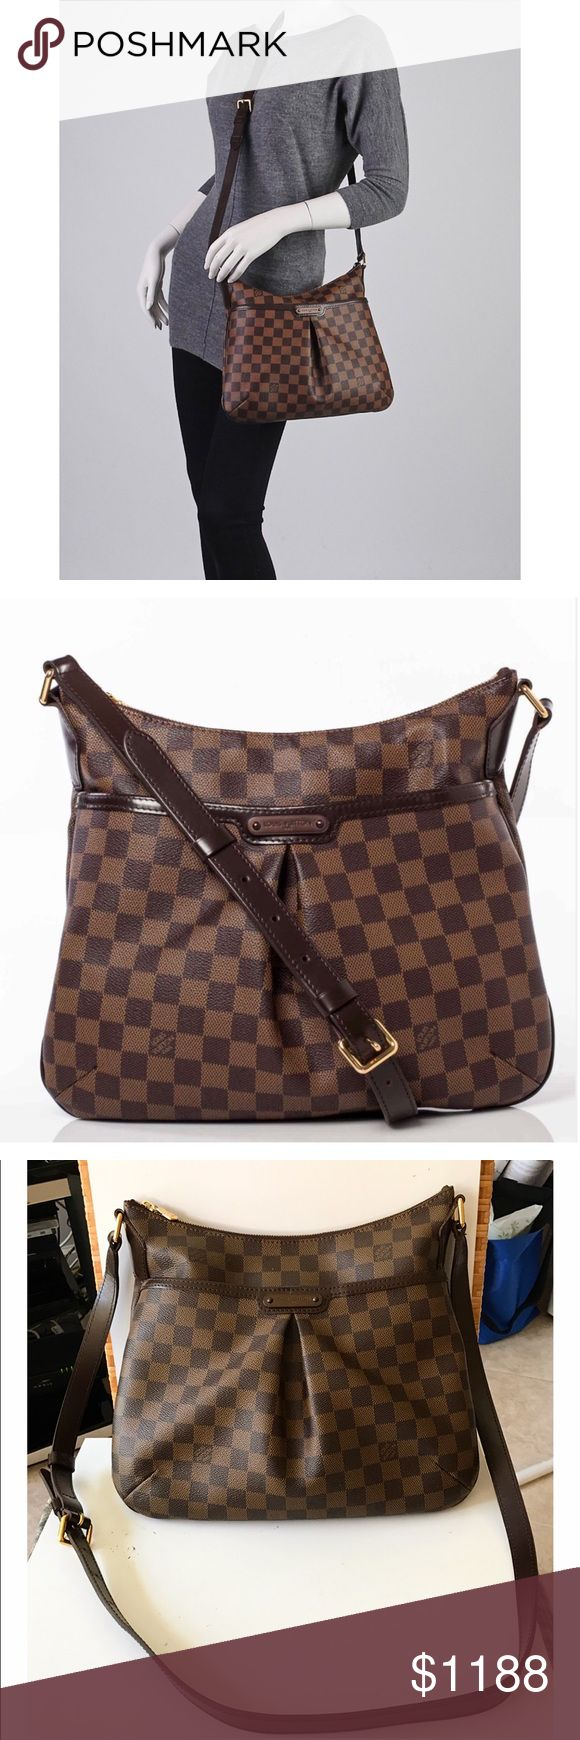 """💯Authentic Louis Vuitton Damier Bloomsbury Bag Authentic Louis Vuitton Bloomsbury PM Damier Ebene. Exterior canvas has minor dirt marks, straps have creasing and minor wear, hardware has minor fading, zipper works properly. Interior has minor dirt marks and small pen mark. Interior has 2 pockets, exterior 1 pocket with magnetic snap closure. Strap adjustable with notches 20""""-25"""". Can be used as a cross body or shoulder bag. Made in France, date code SP2160. Size 10.6""""H x 11.8""""L x 1.2""""D. NO…"""